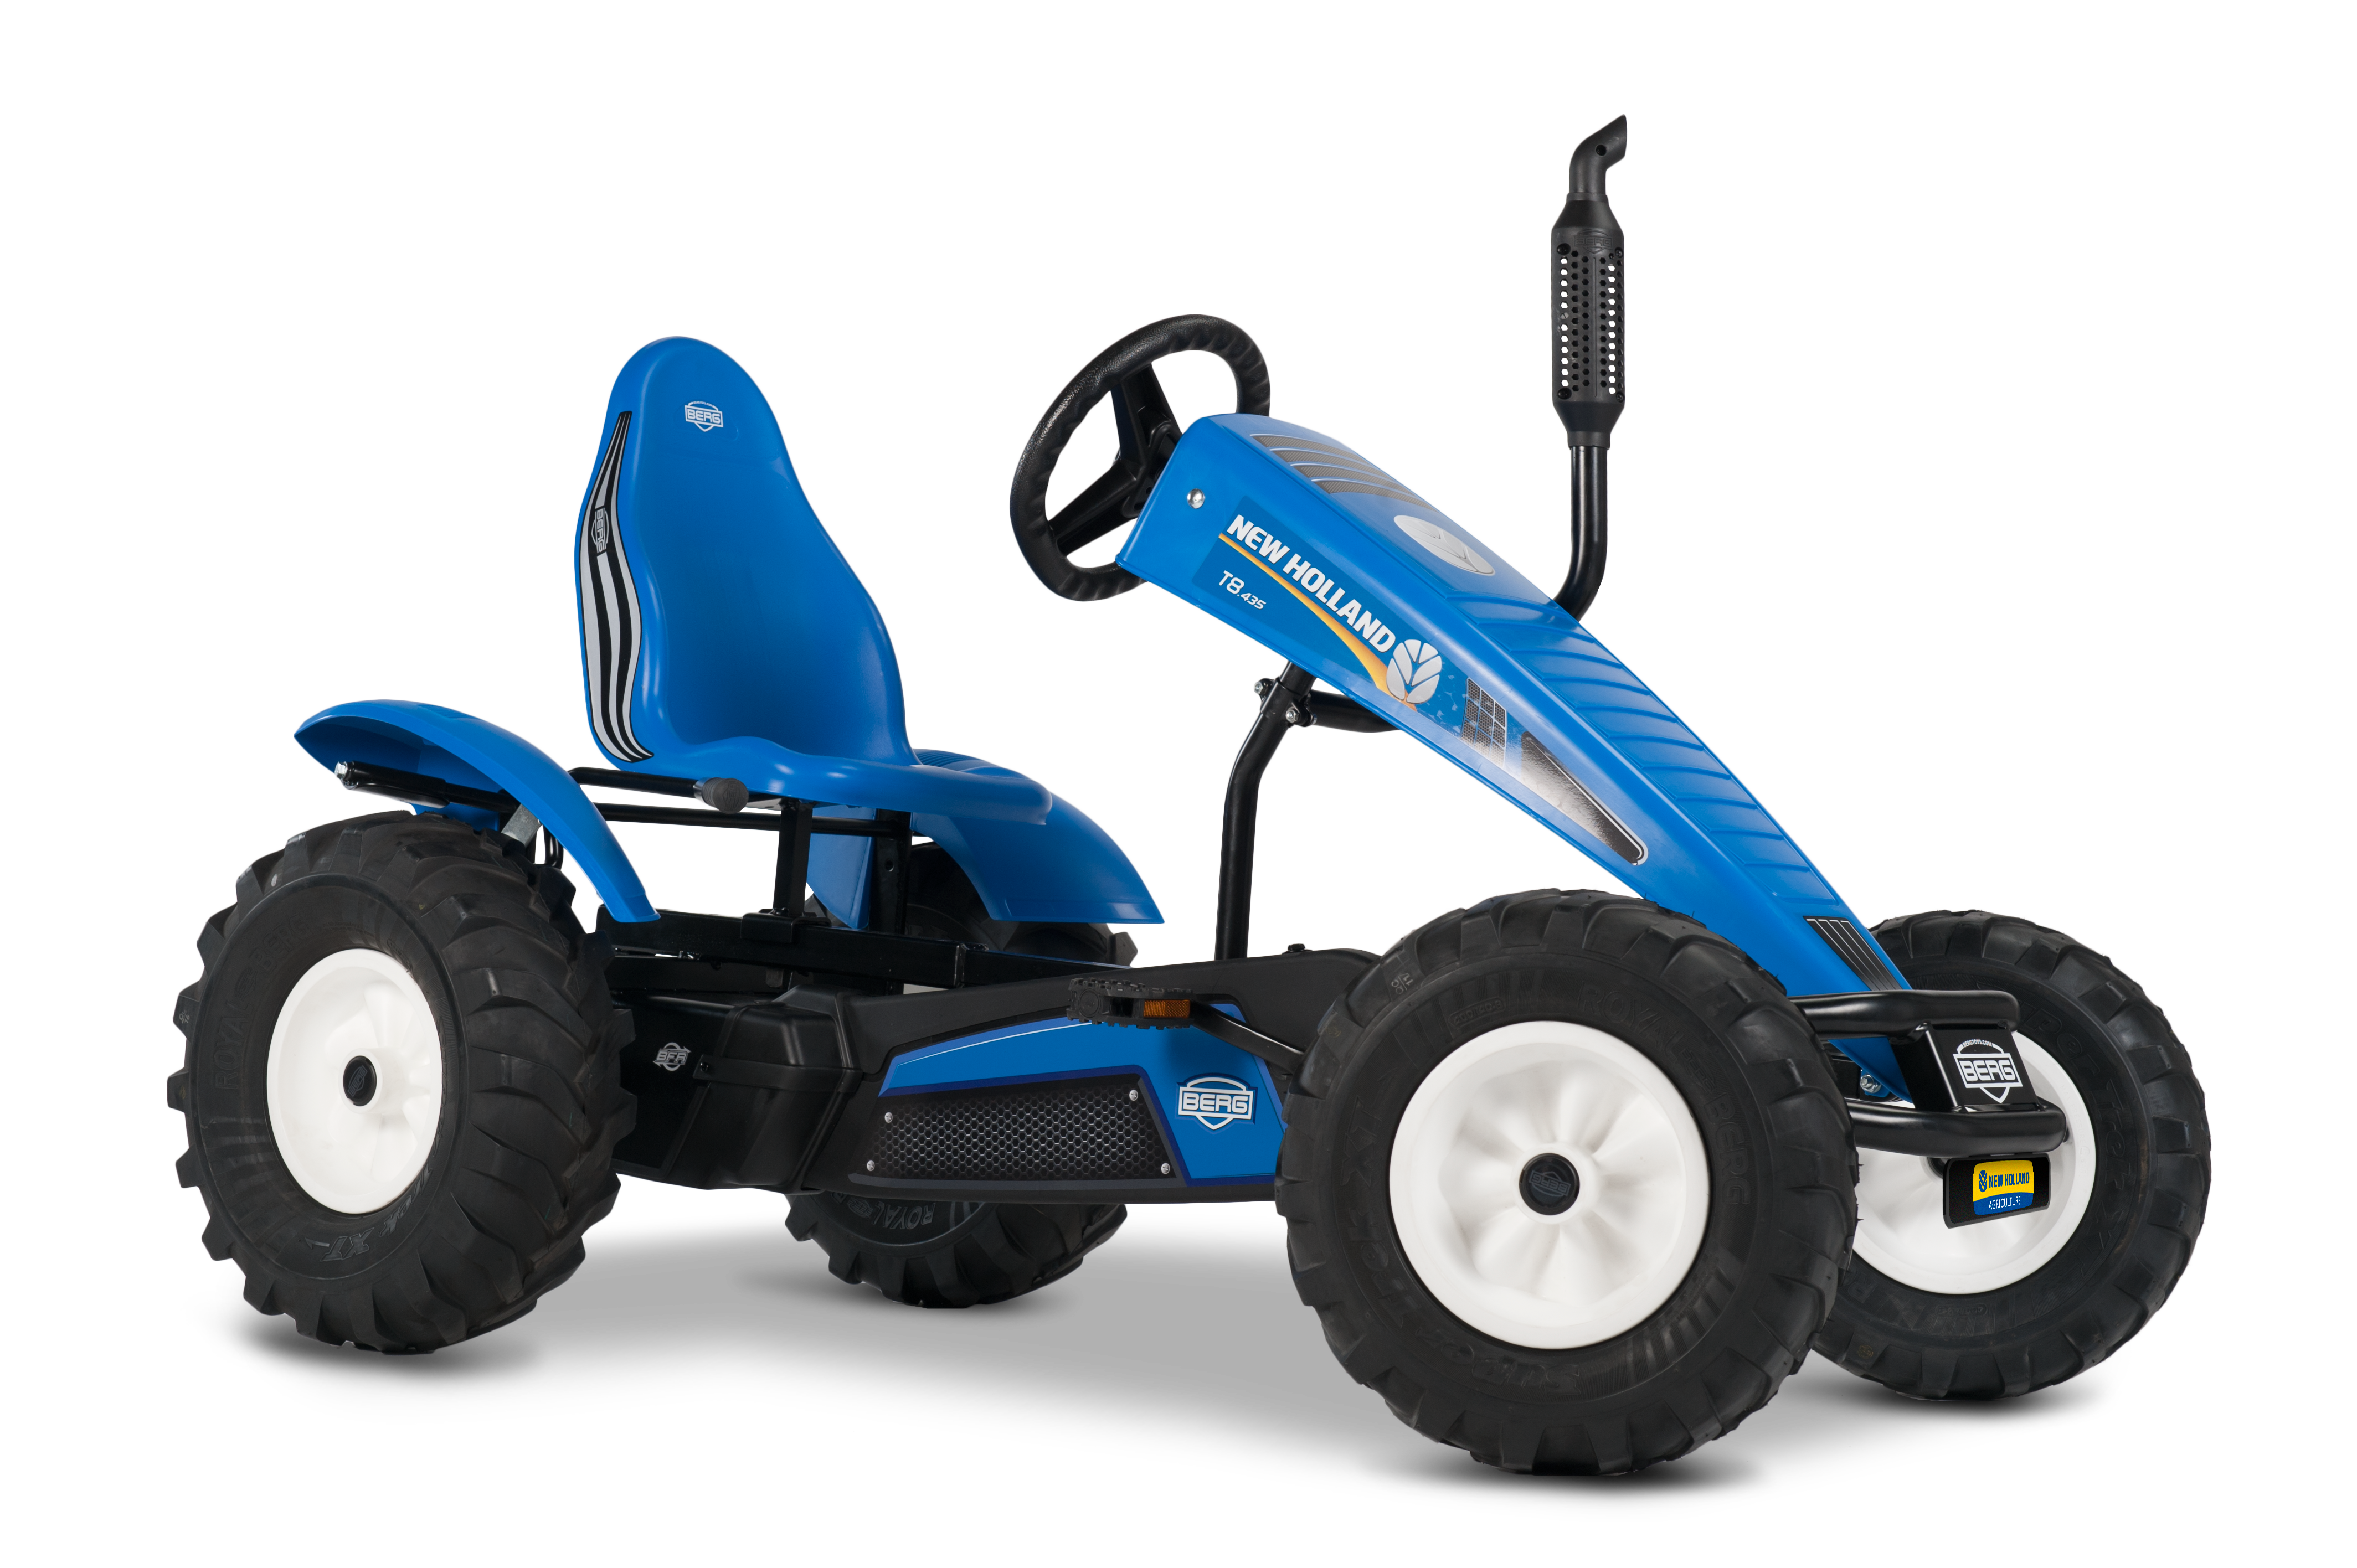 BERG NEW HOLLAND BFR 3 gear